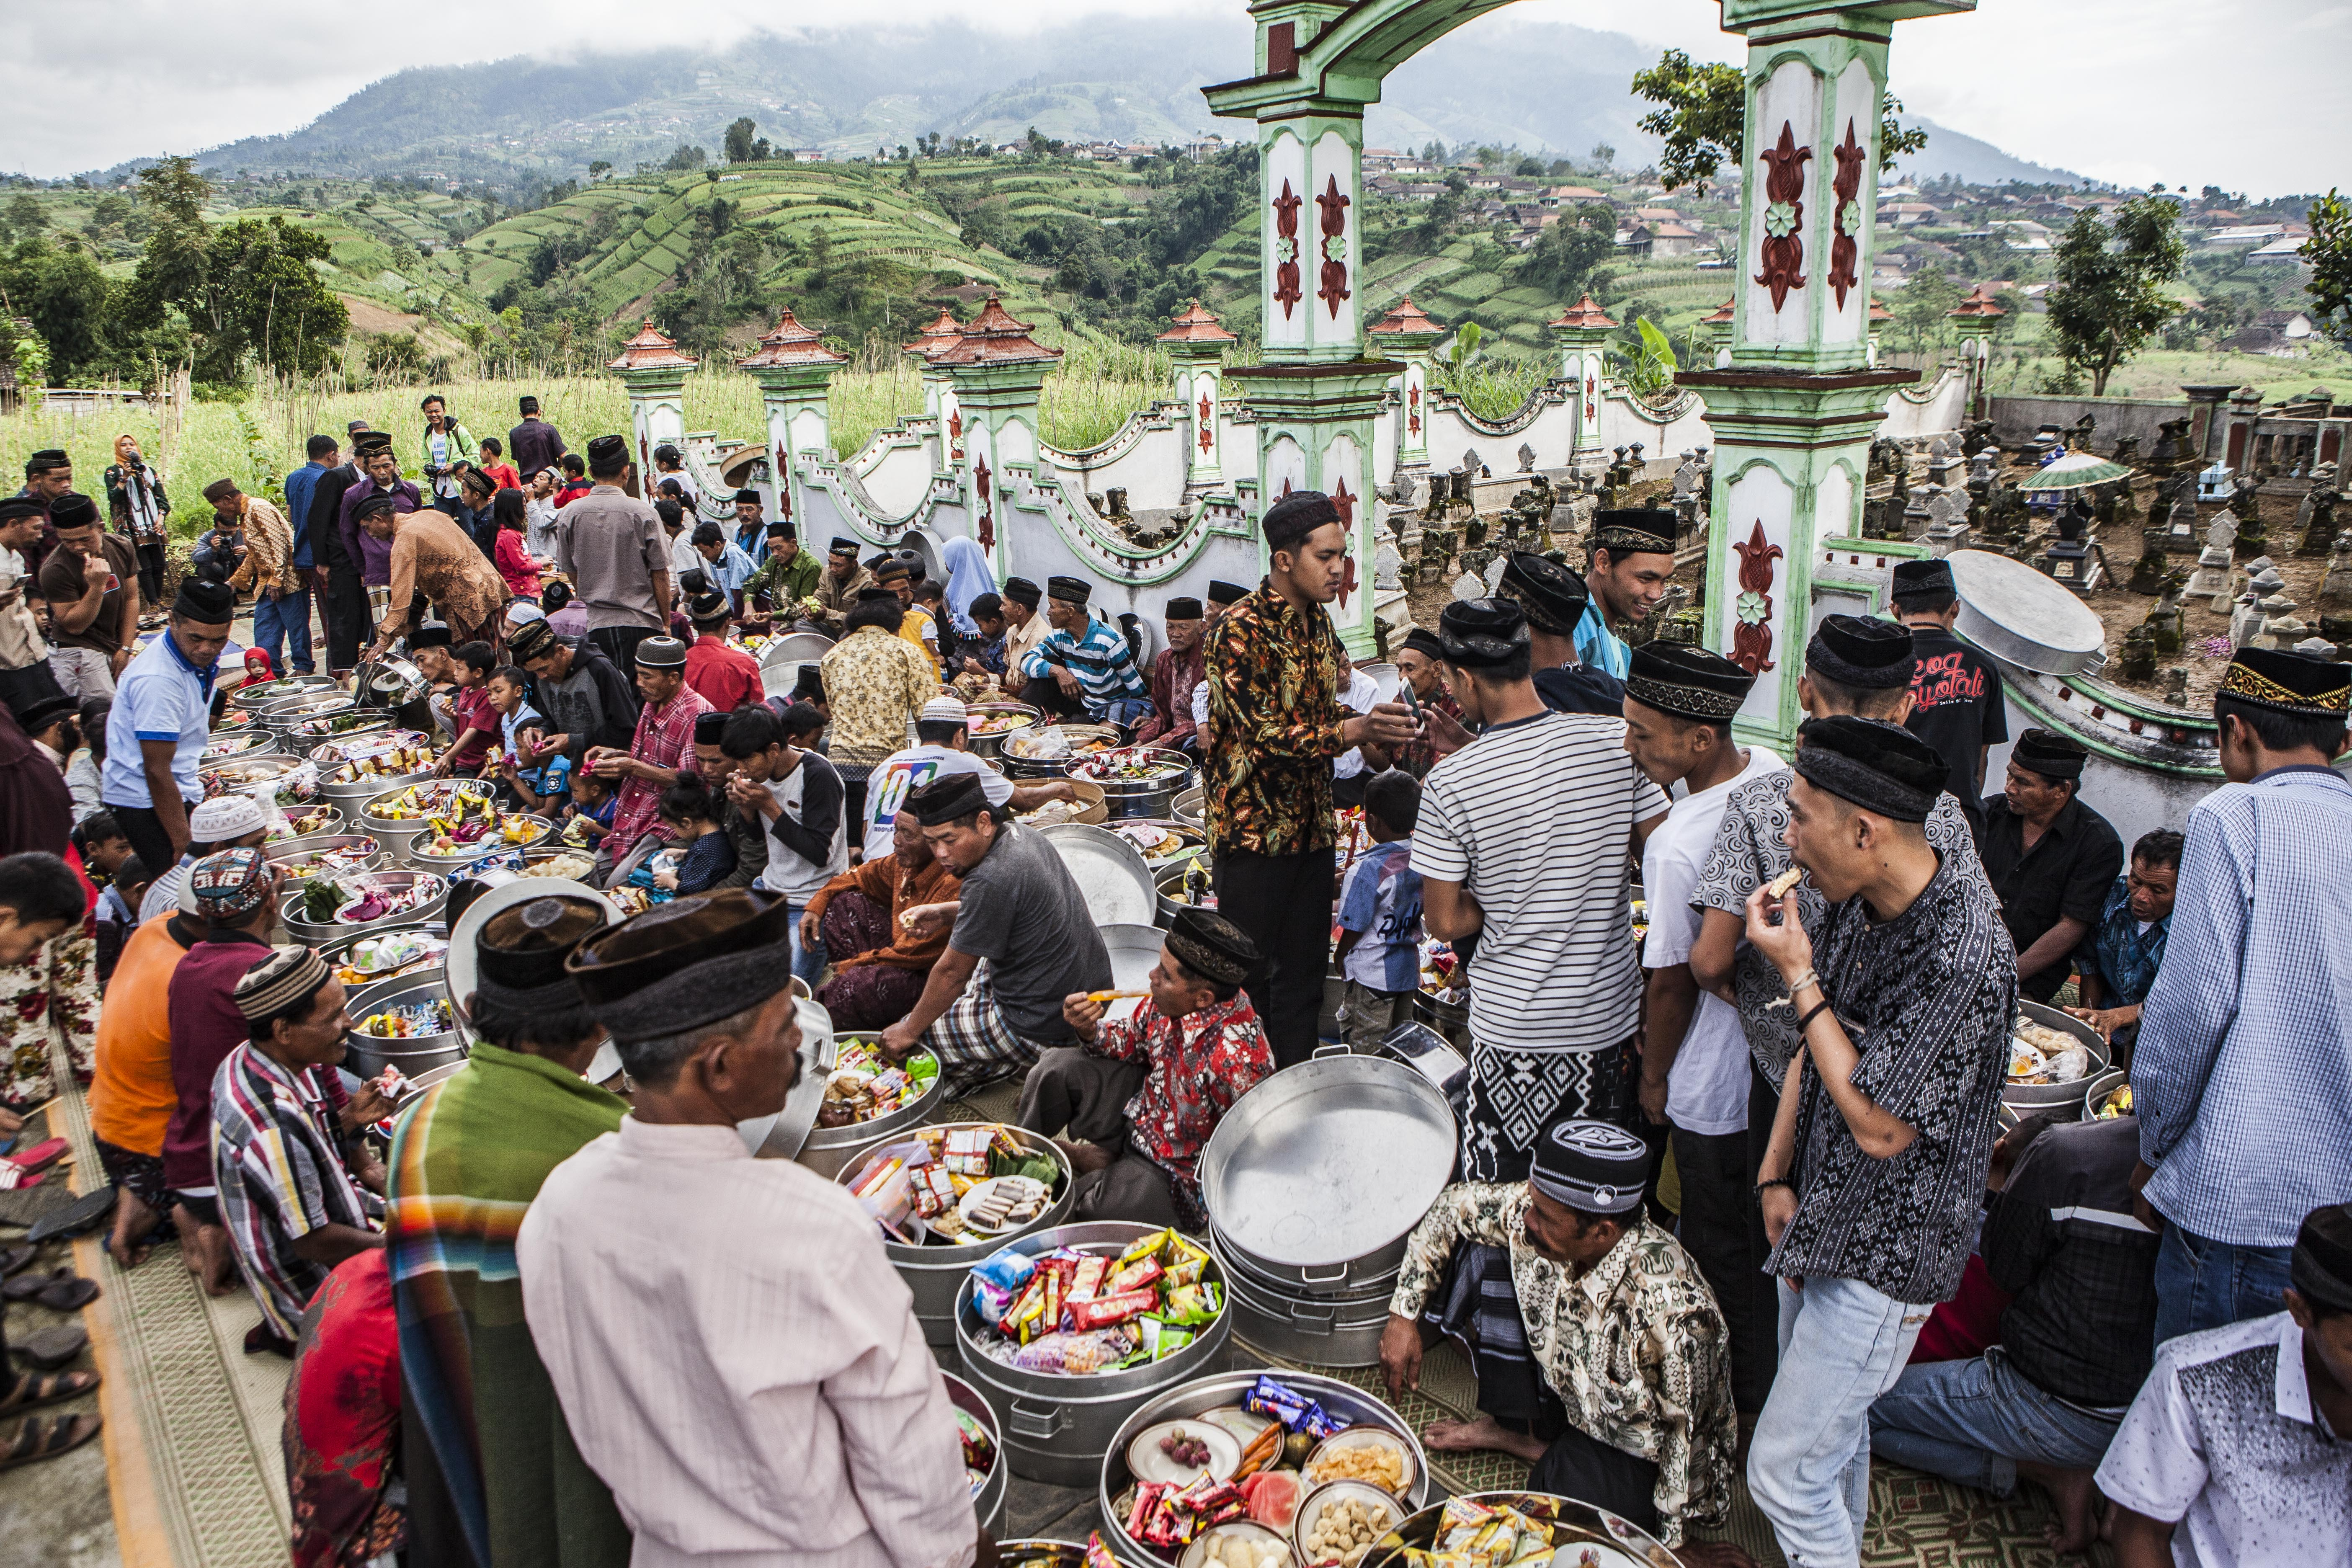 Nyadran: A Unique Javanese Tradition Welcoming Ramadan